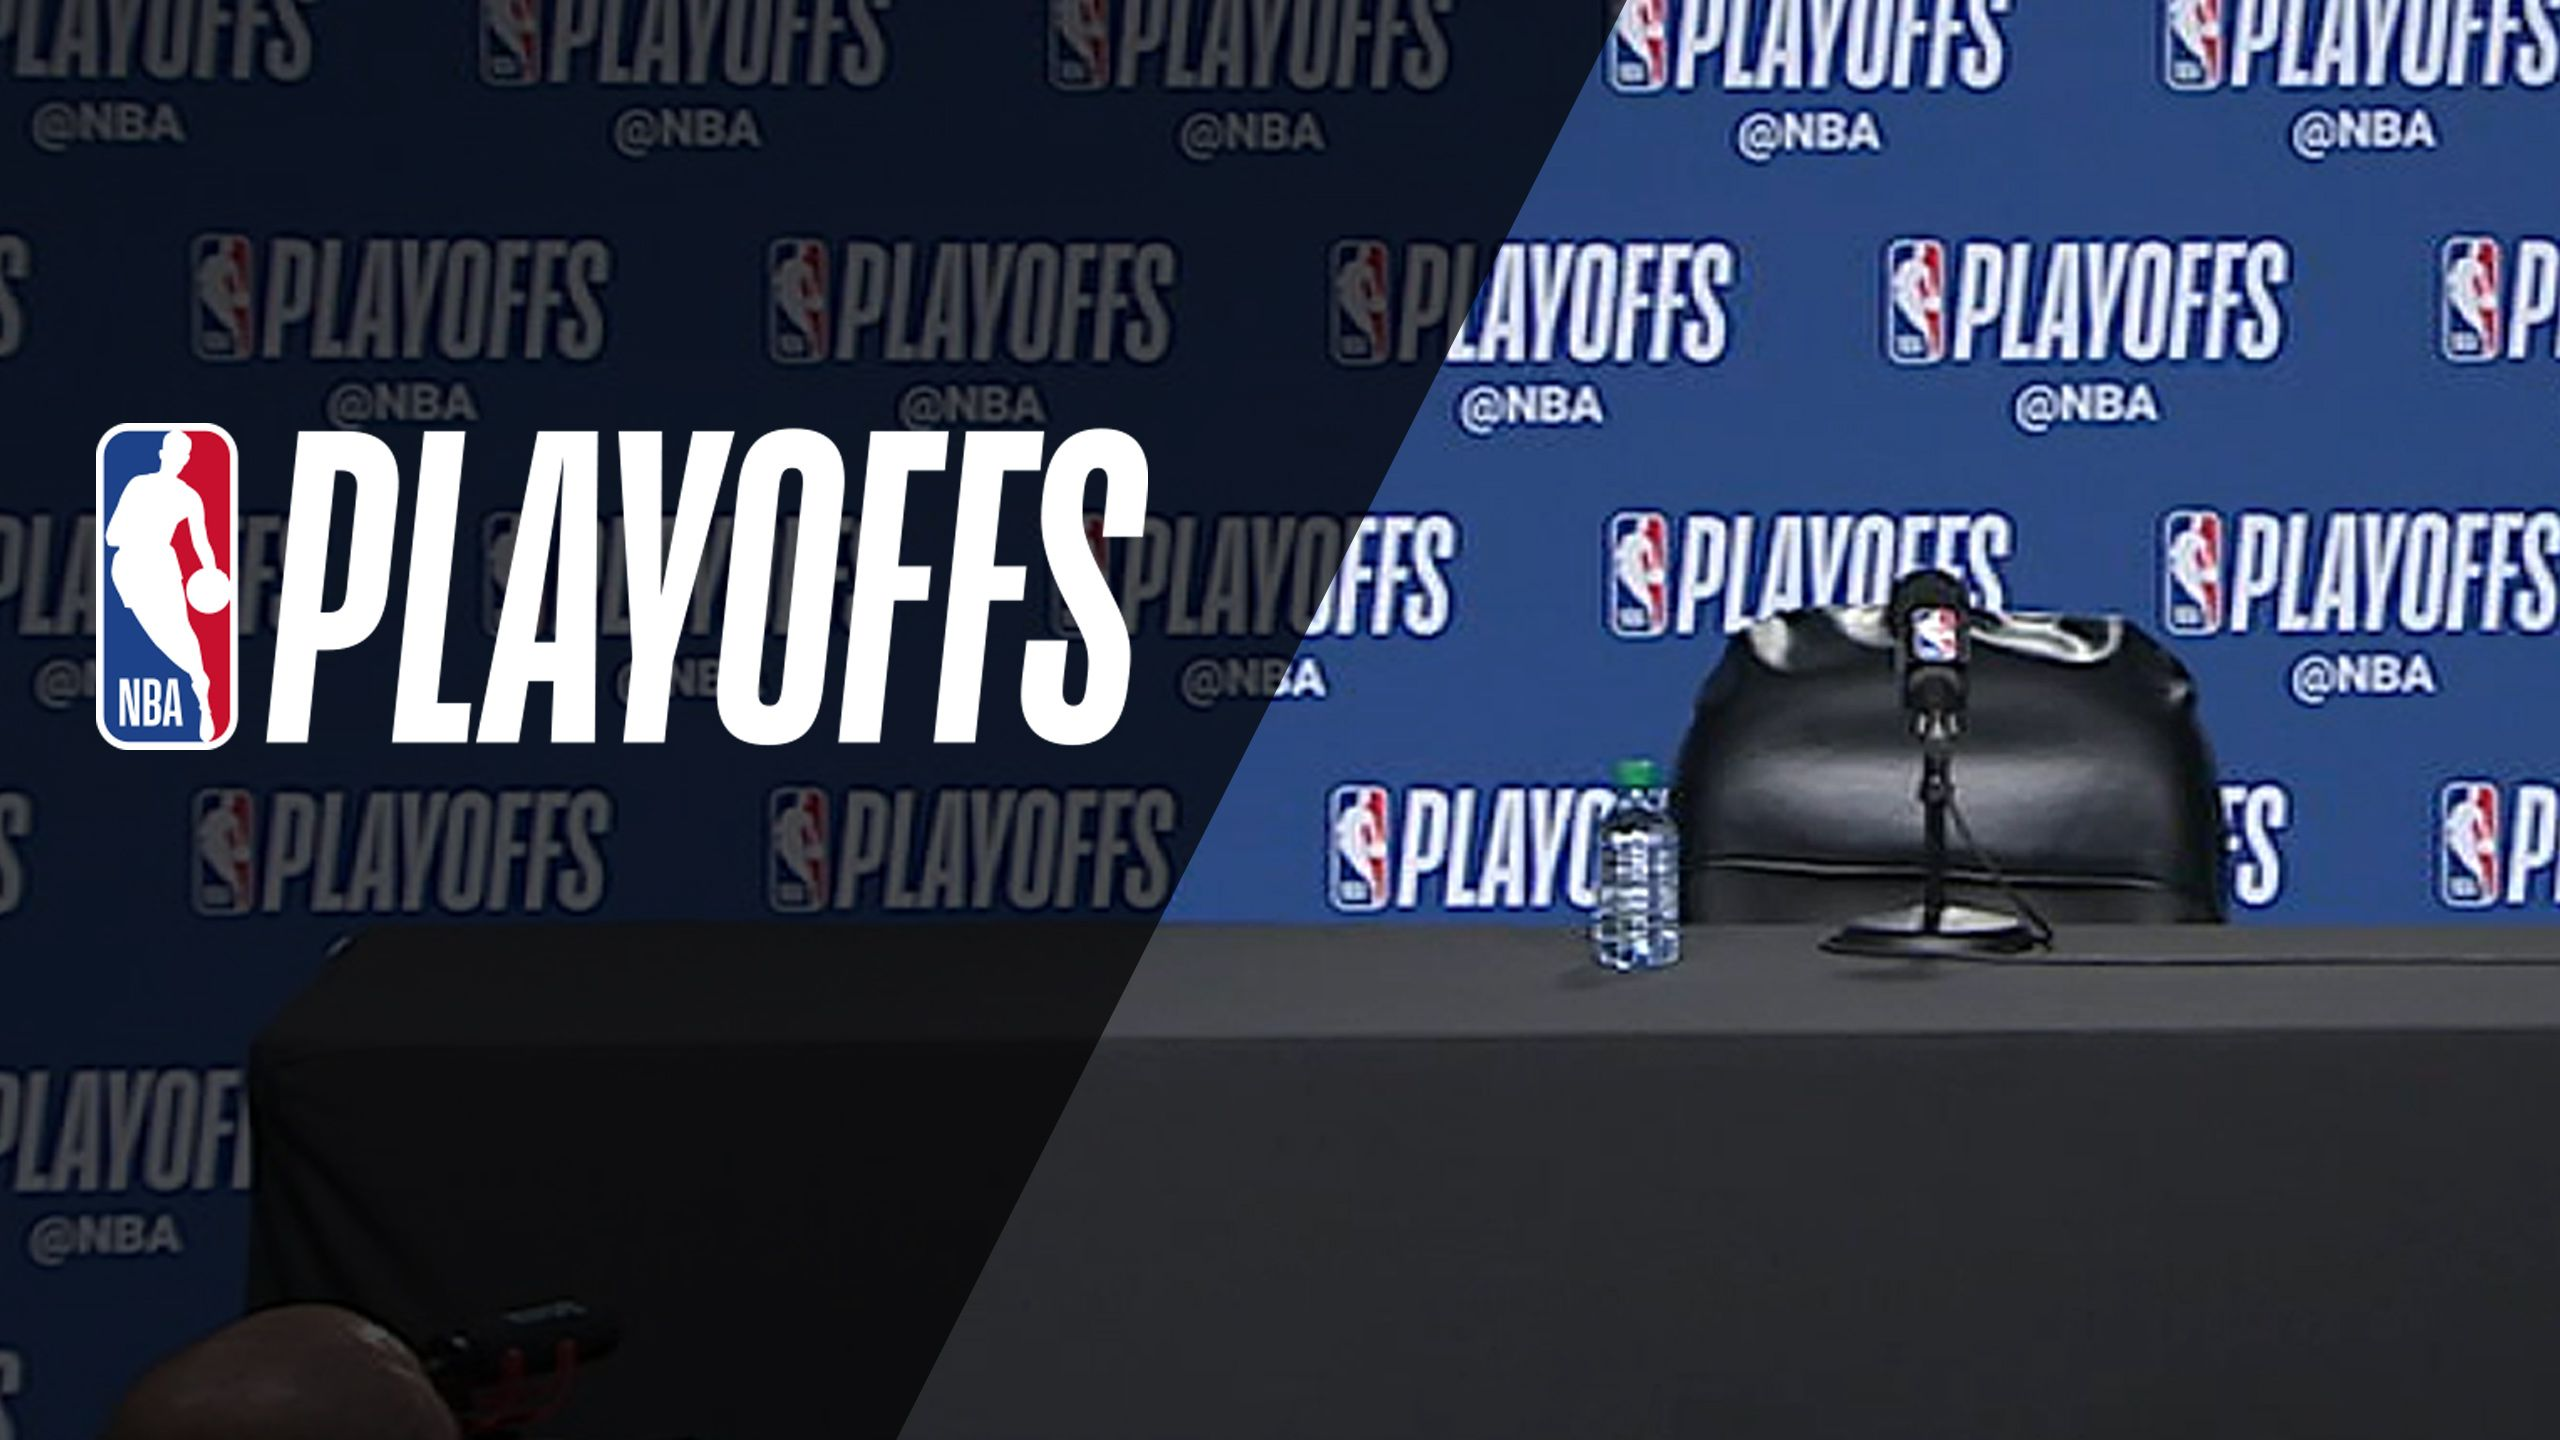 NBA Pregame Press Conferences